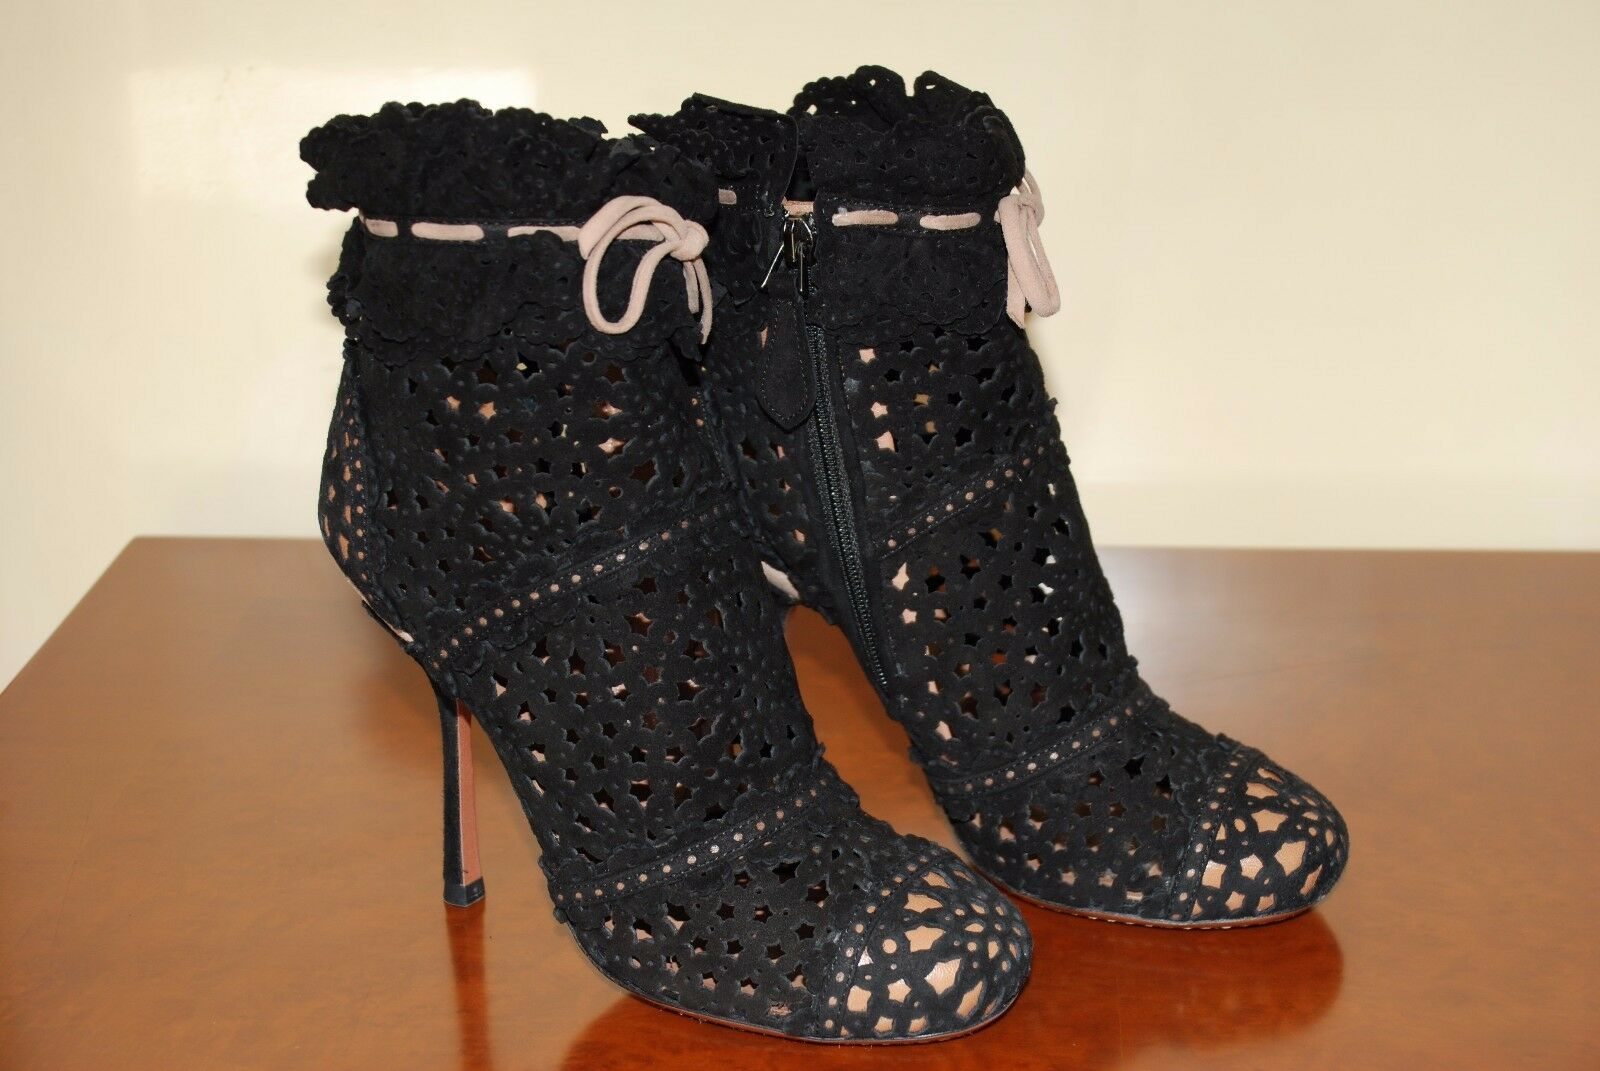 AZZEDINE ALAIA BOOTS   HAUTE COUTURE   NEW   VALUE 2400 EUROS, ONLY PAIR ON EBAY